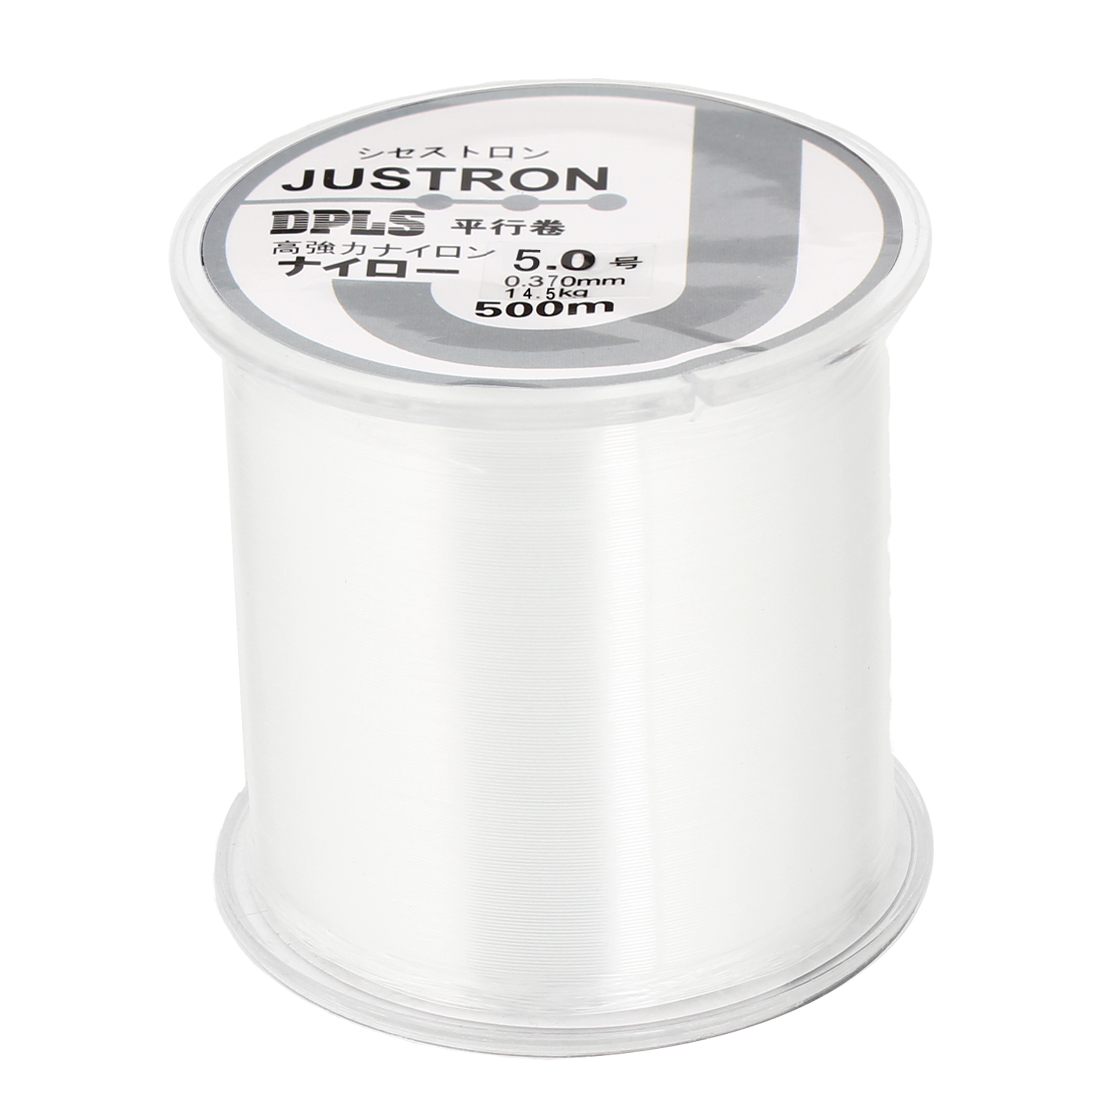 5.0# 0.370mm Diameter 500M Thread 14.5Kg 32 lb Fishing Line Spool Clear